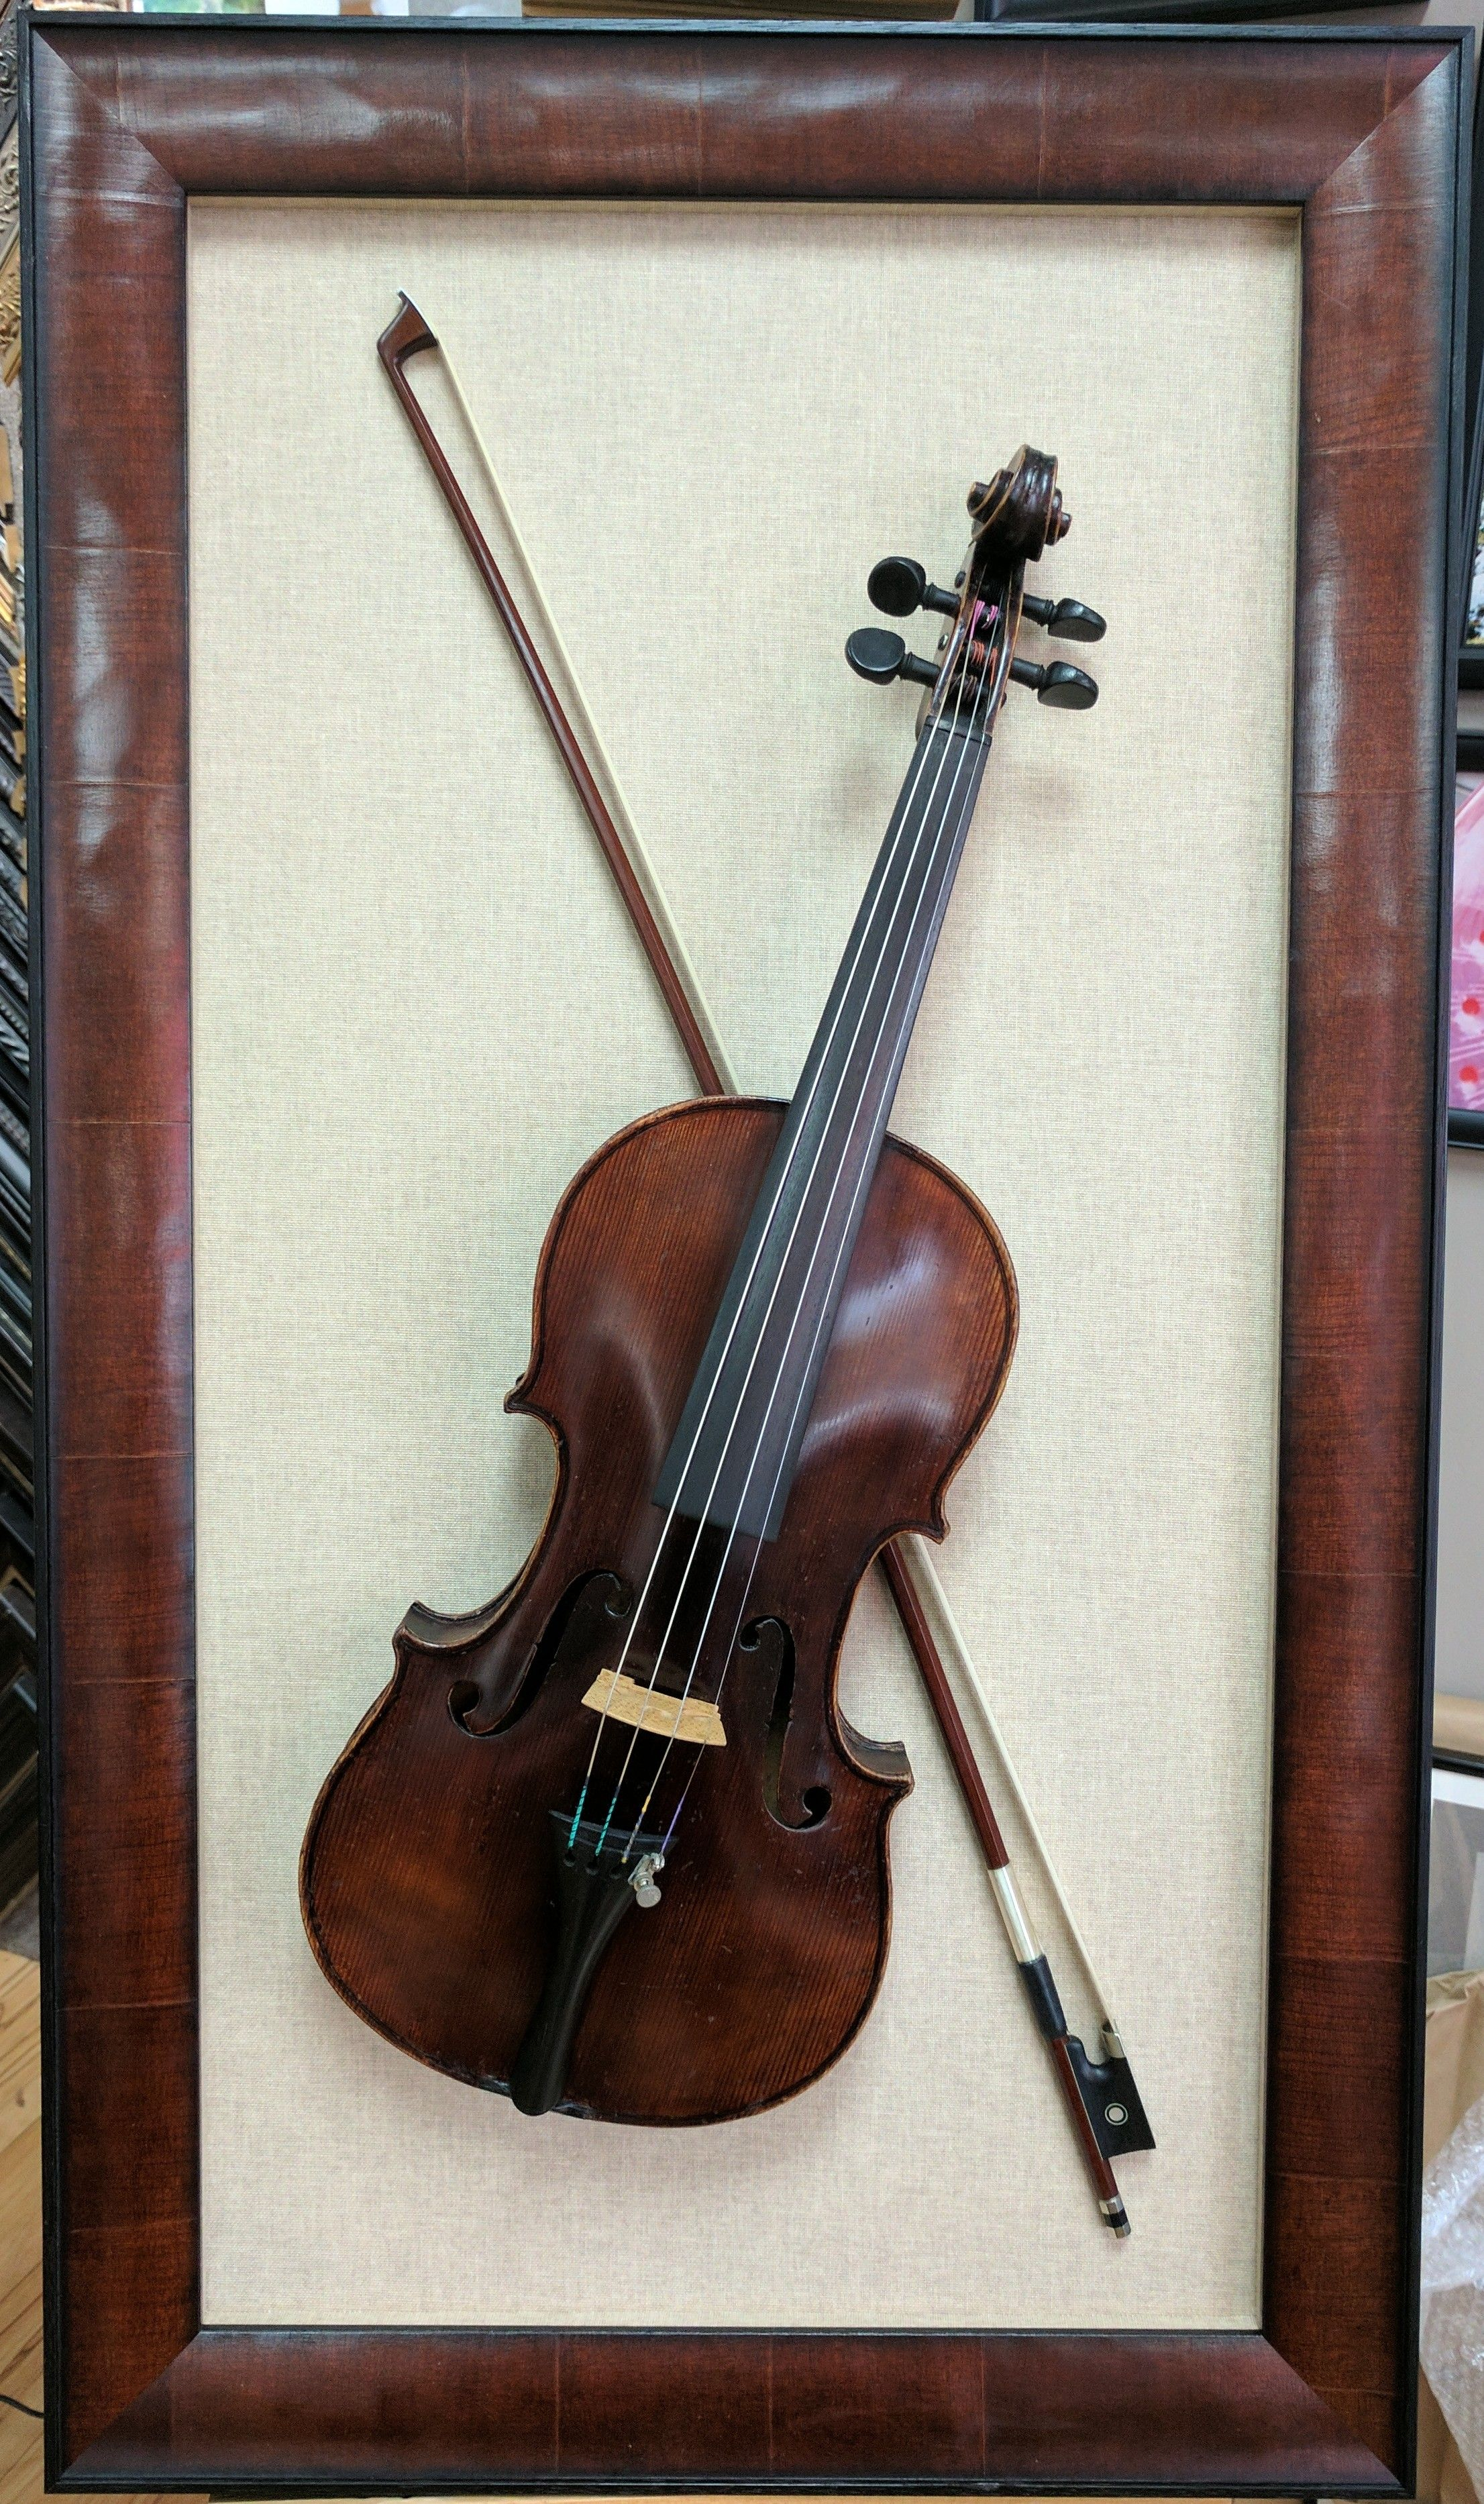 There S No Limit To What Can Be Custom Framed Beautiful Violin In A Mahogany Wood Shadow Box Wood Shadow Box Shadow Box Shadow Boxes